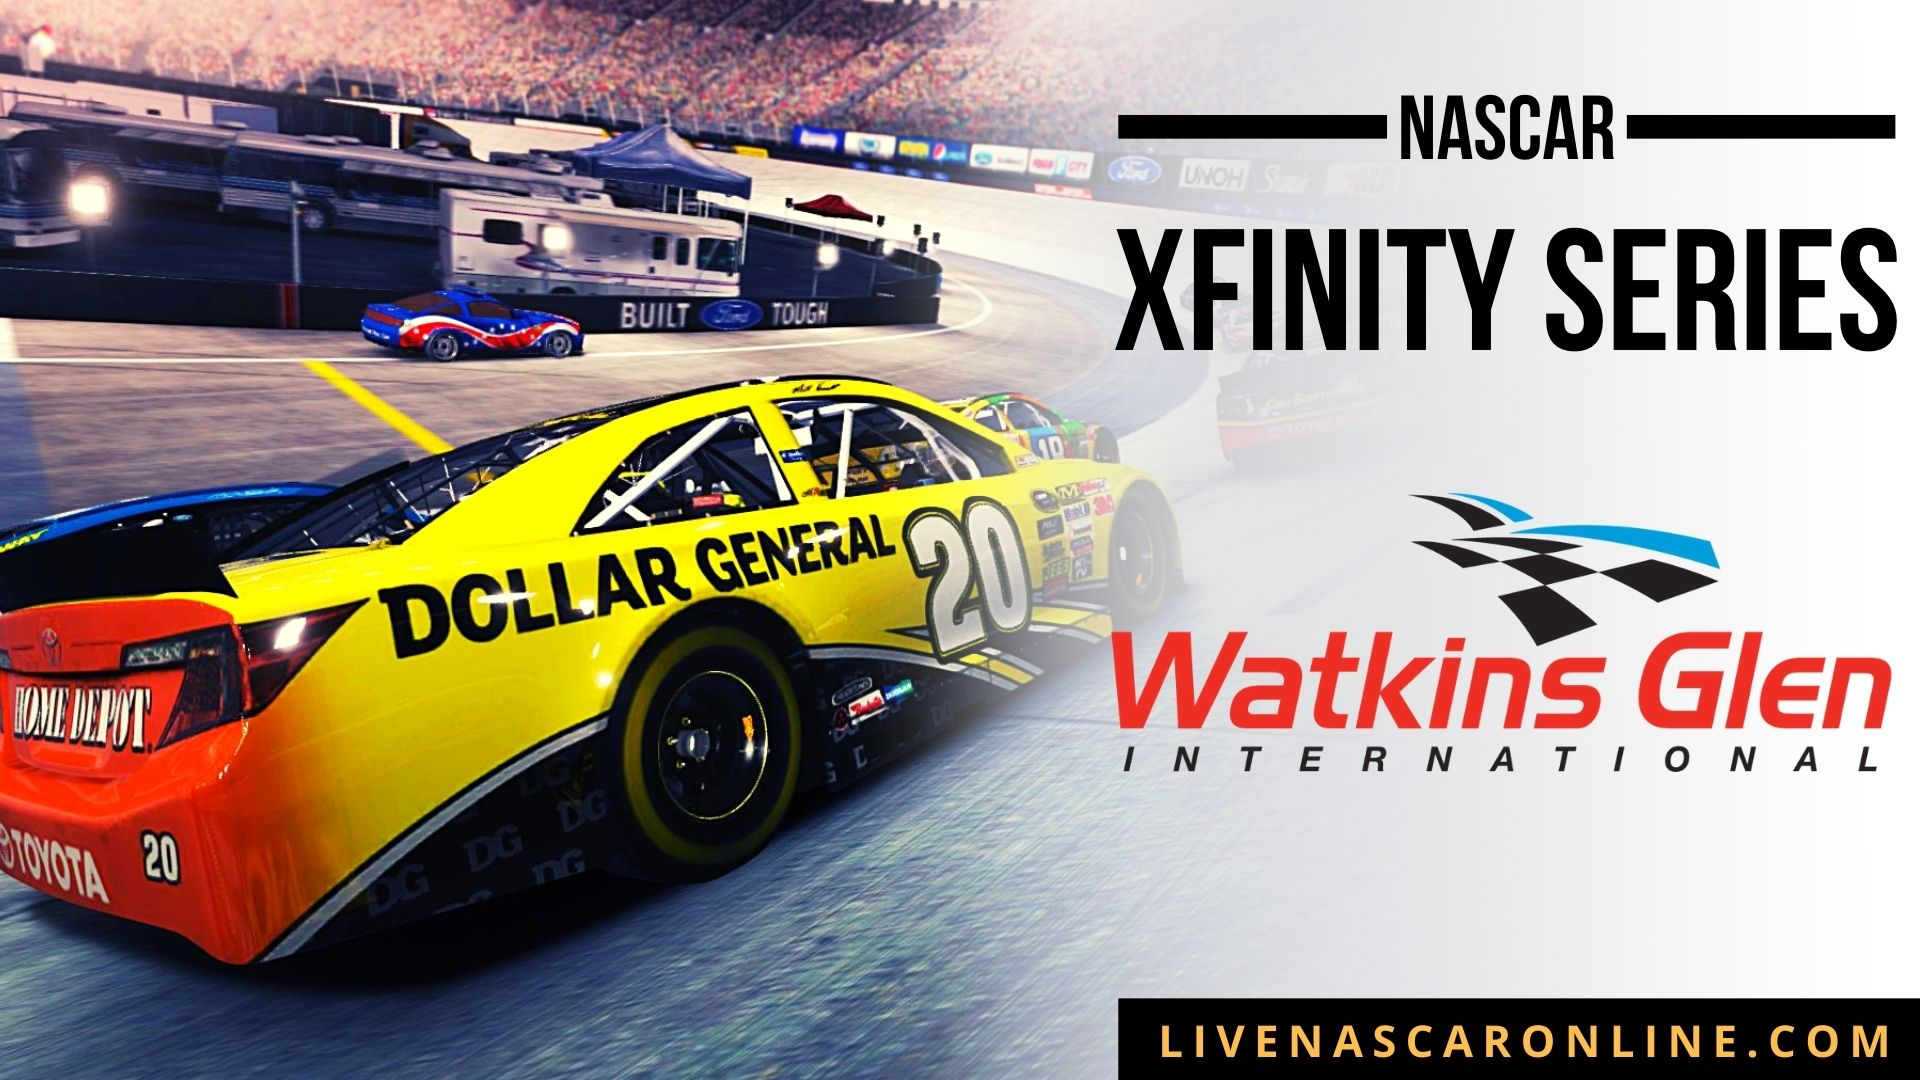 NASCAR Xfinity Race at Watkins Glen Live Stream 2021